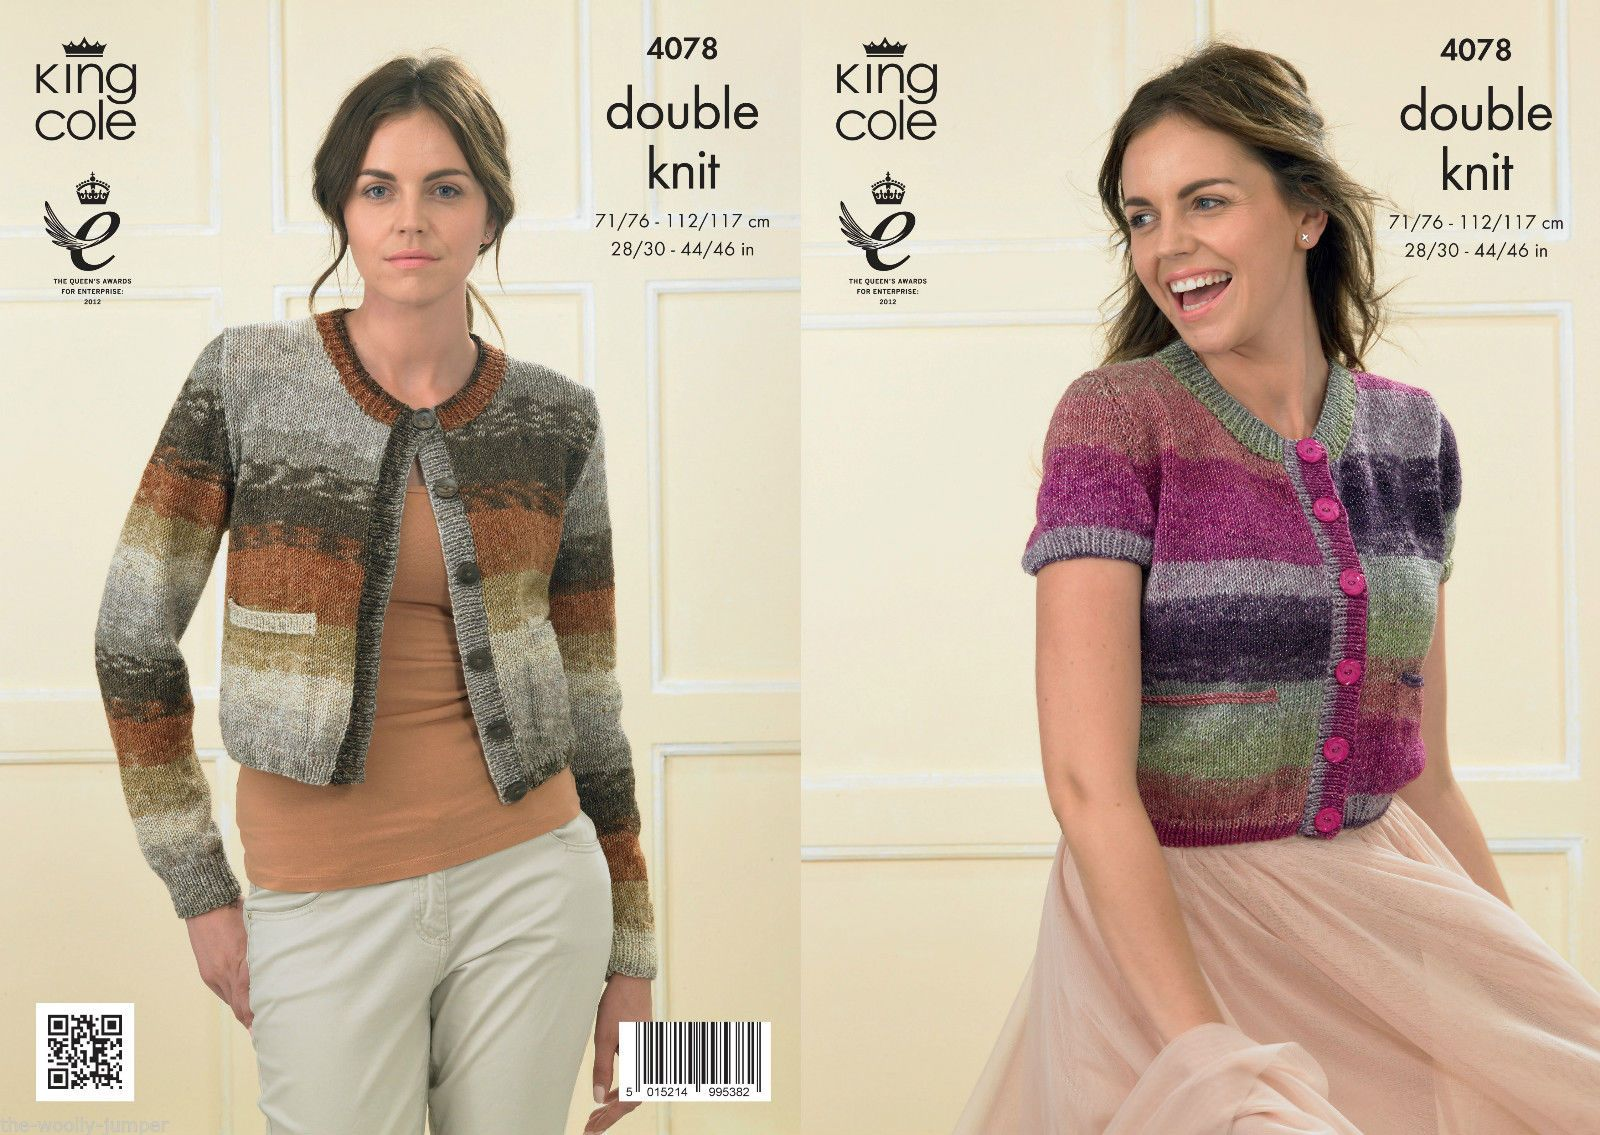 02cc74405ab4 4078 - KING COLE SHINE DK CARDIGAN KNITTING PATTERN - TO FIT CHEST SIZE 28  TO 46